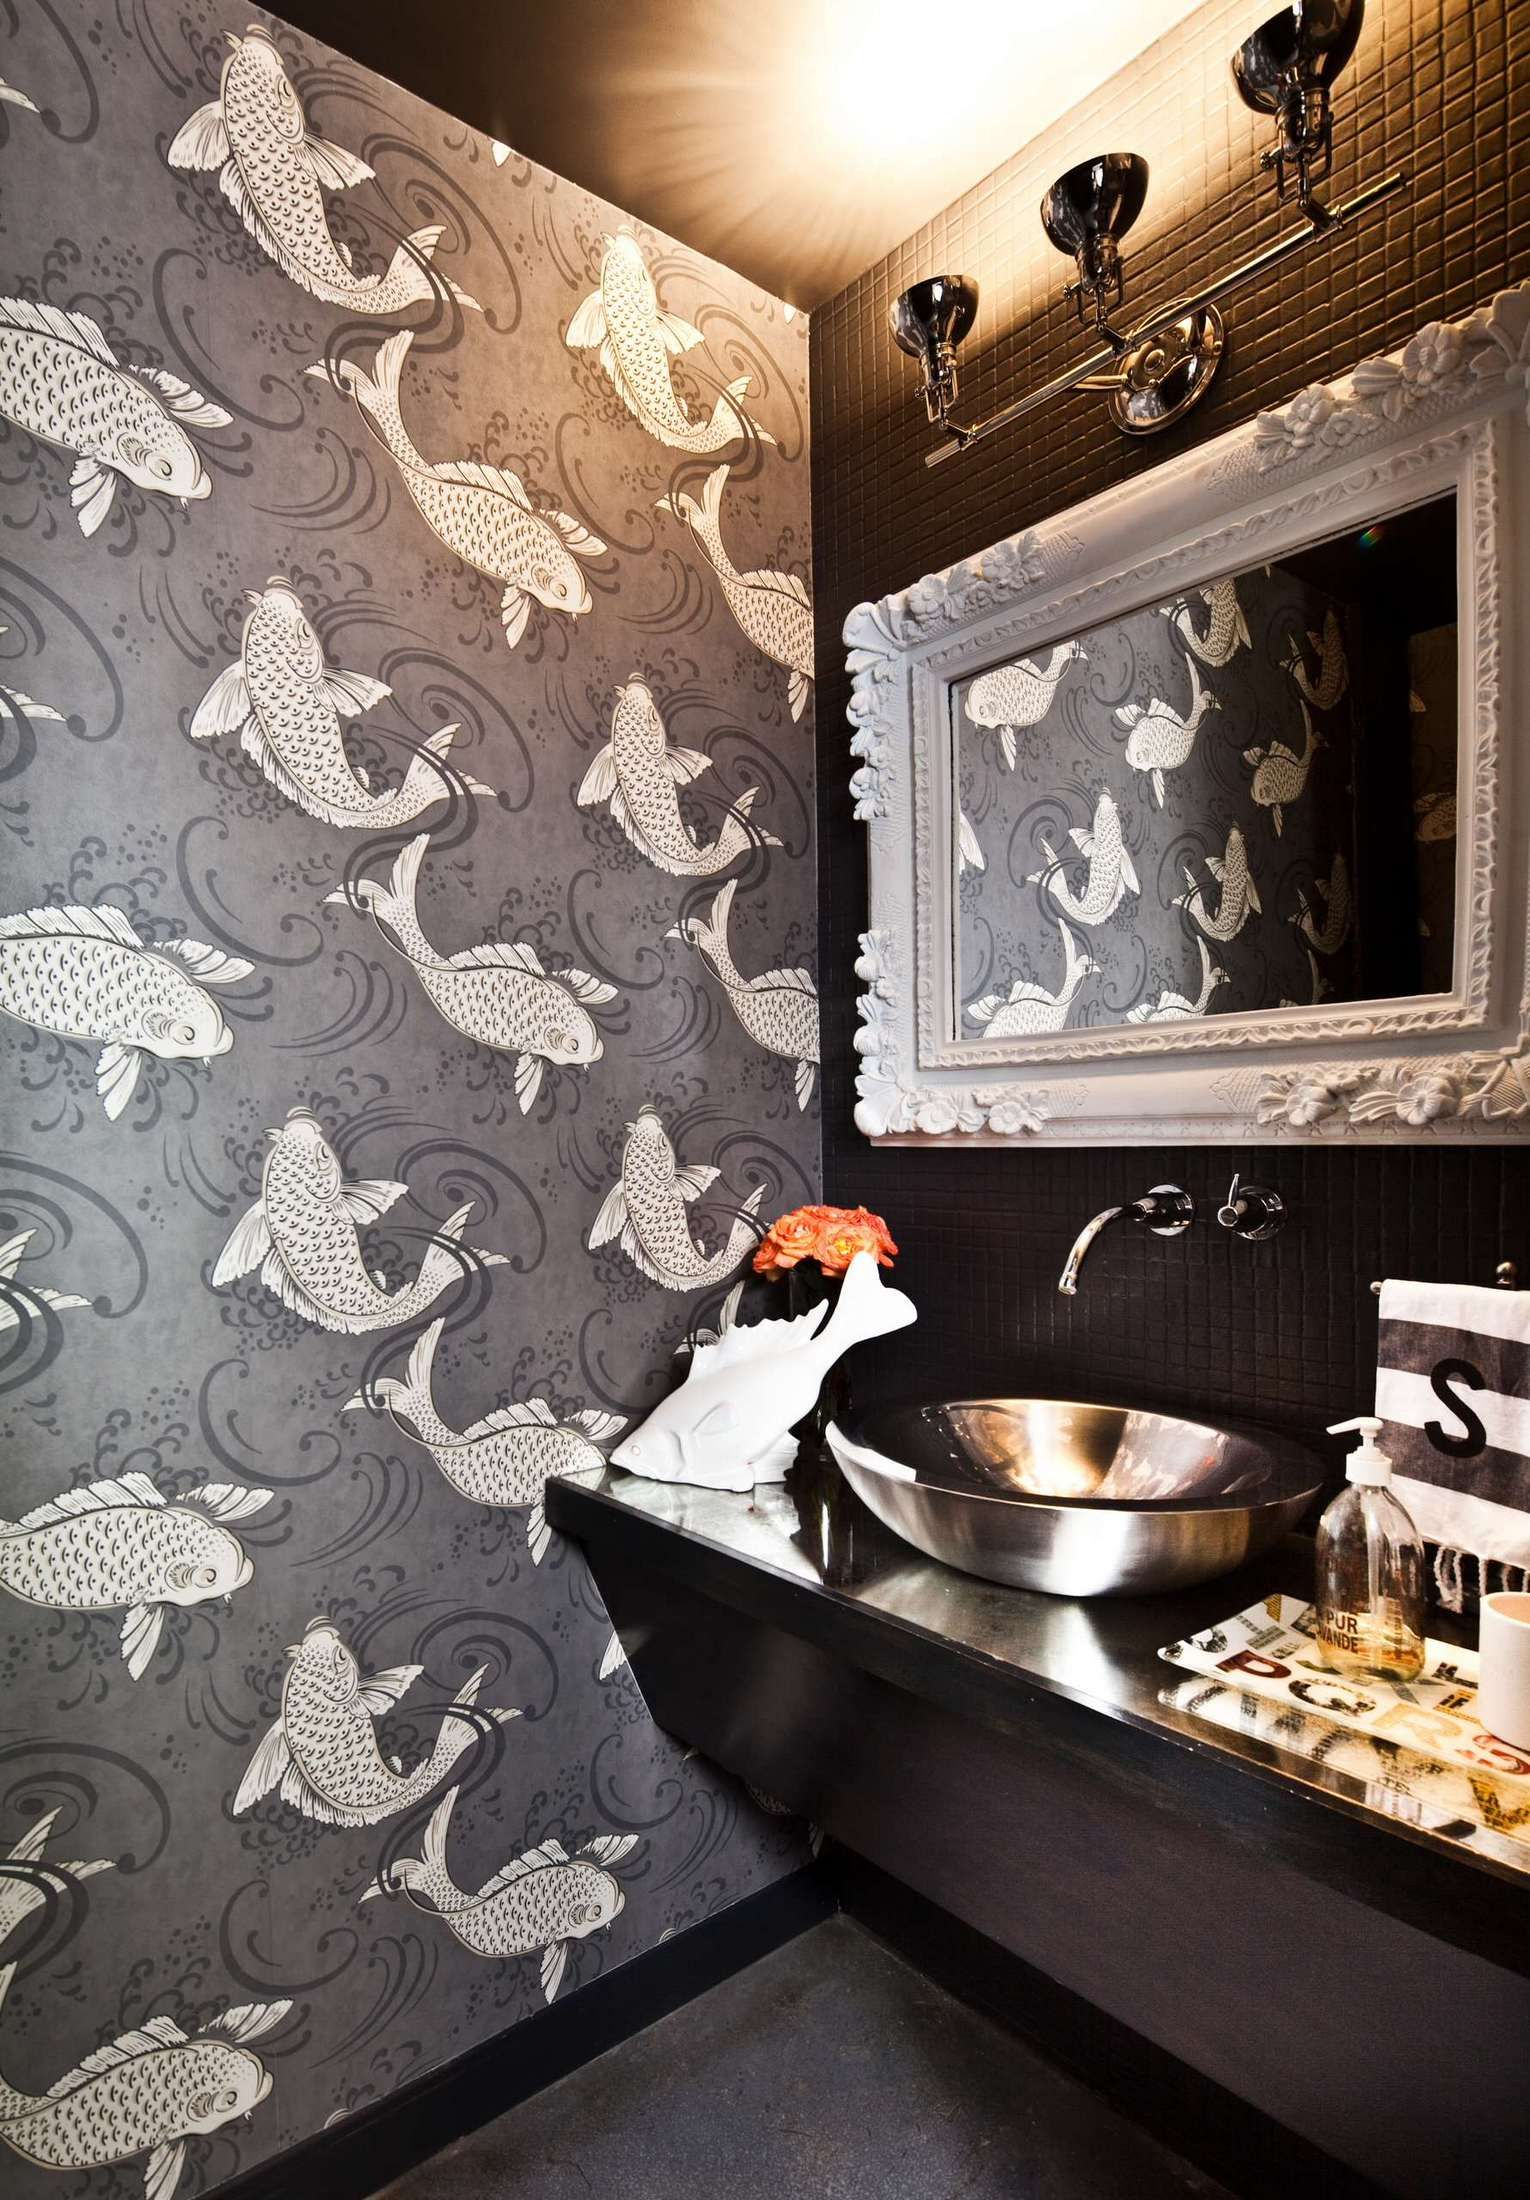 Gray koi fish wallpaper in the powder room | Usual House